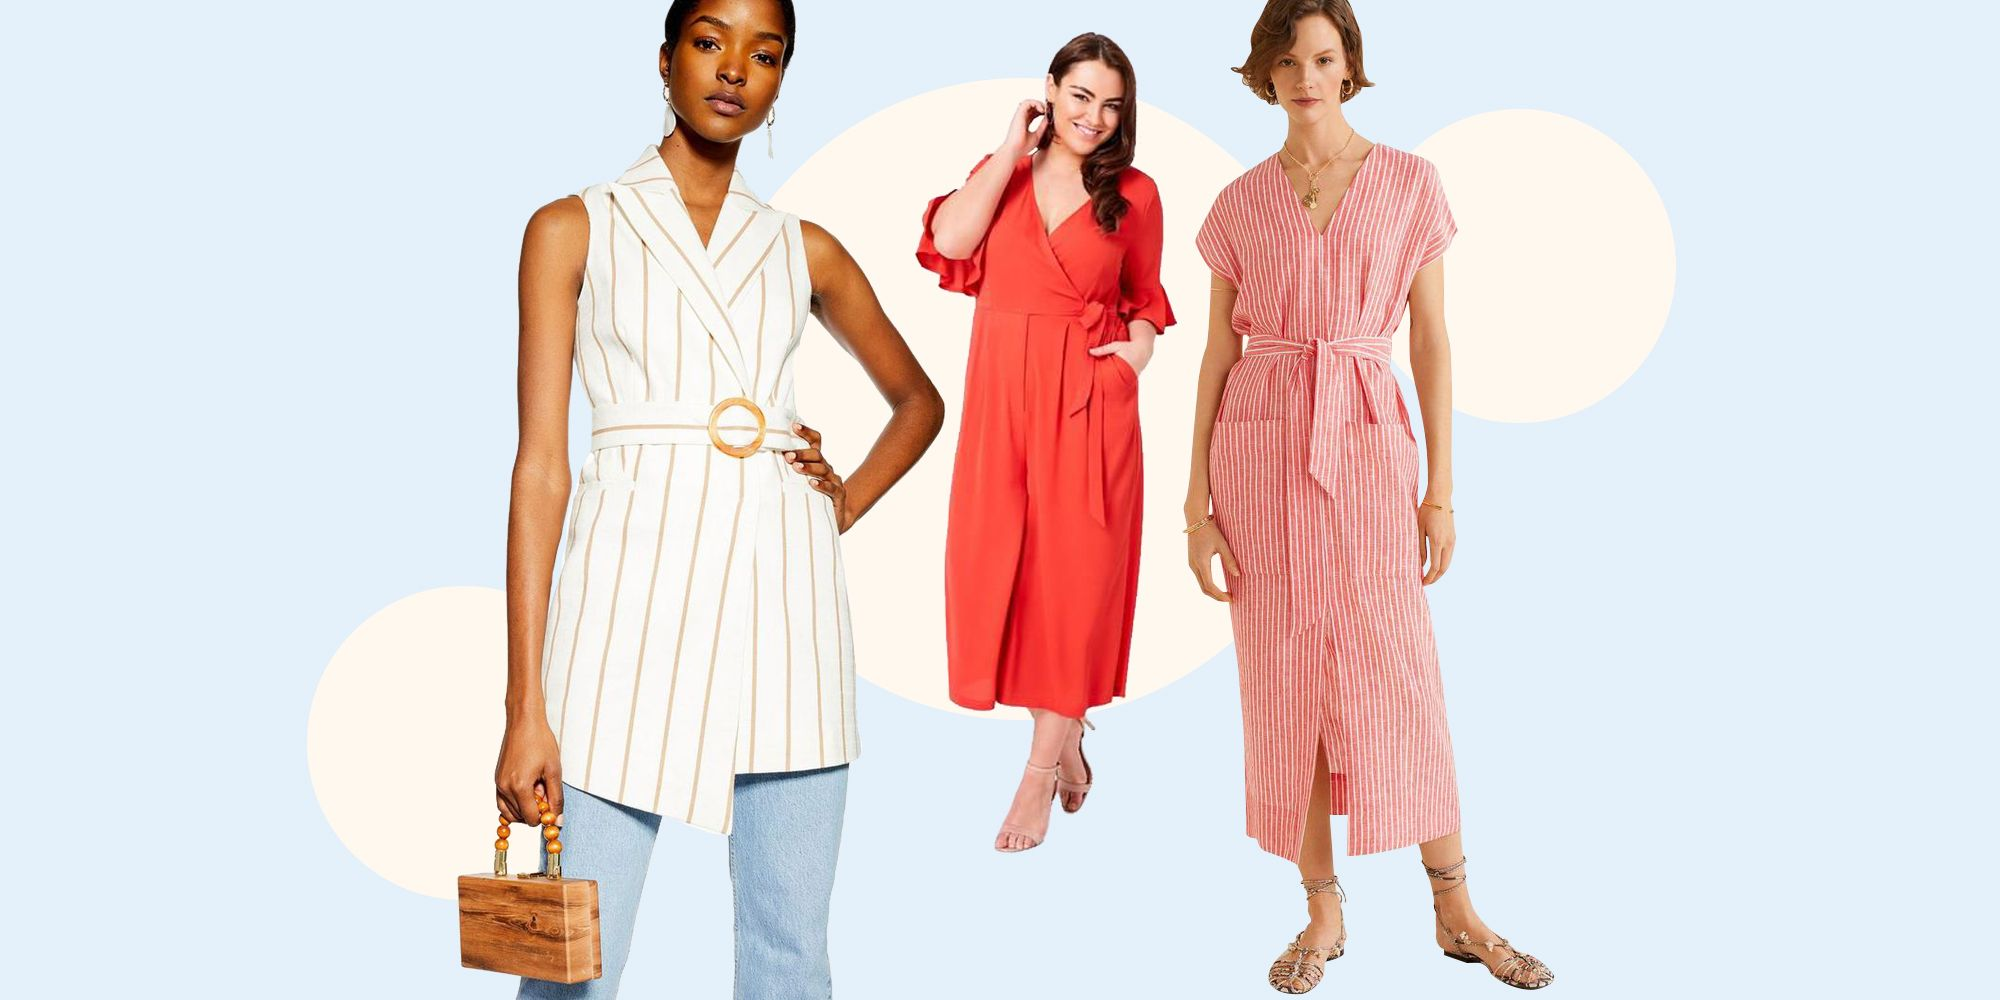 f9703b49da27a 22 Cute Summer Office Outfits 2019 — What to Wear to Work in the Summer